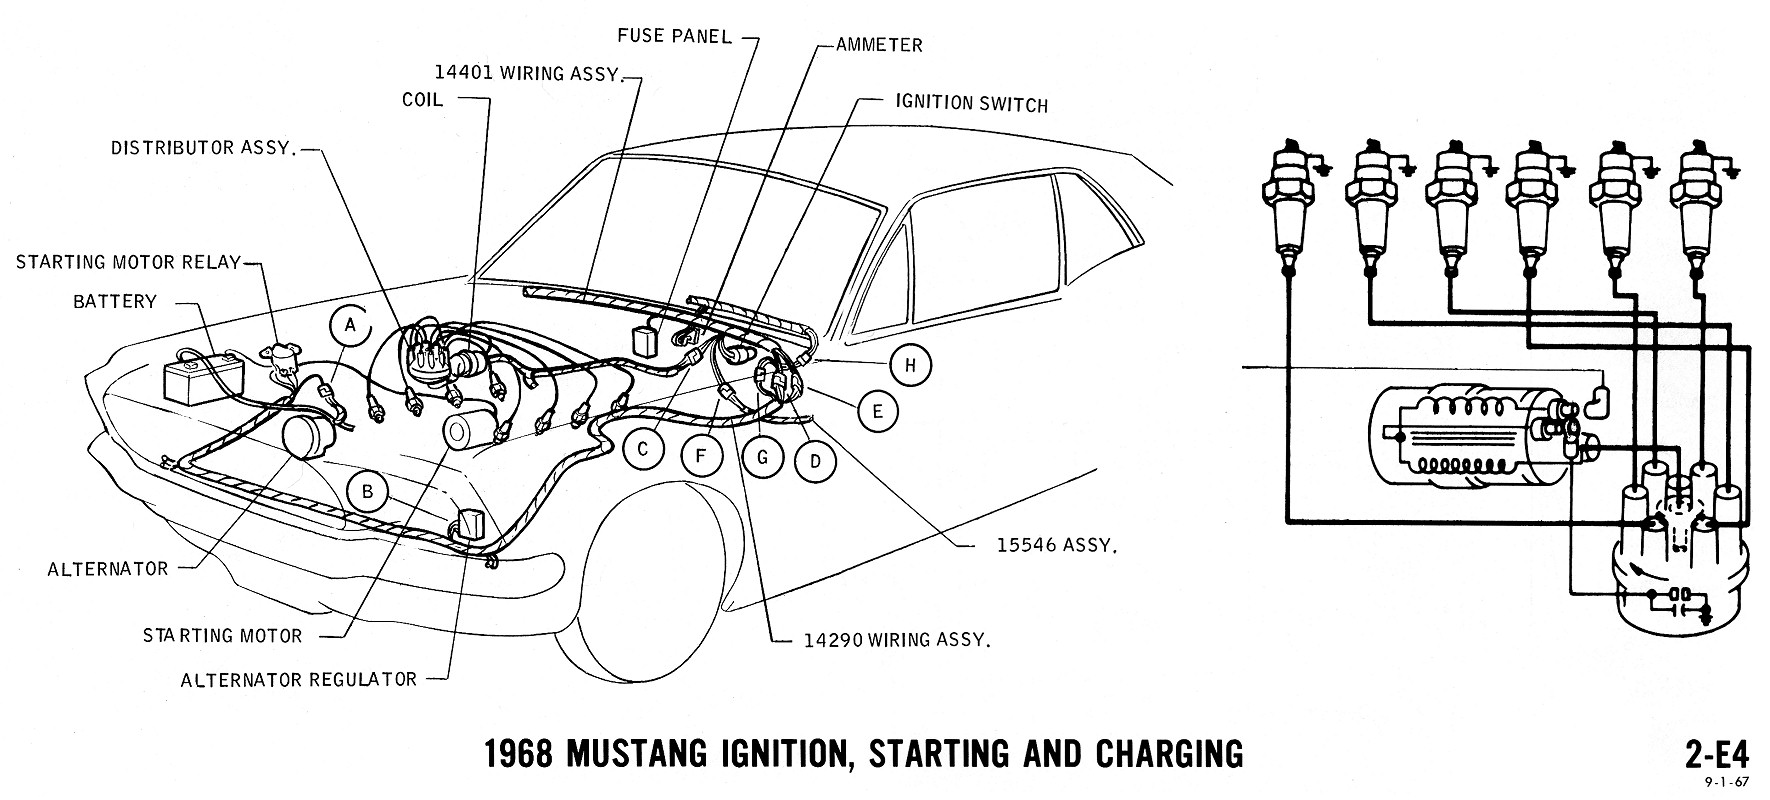 1968 mustang wiring diagram ignition starting charging 2 1968 mustang wiring diagrams and vacuum schematics average joe 1969 Ford F100 Steering Column Wiring Diagram at crackthecode.co